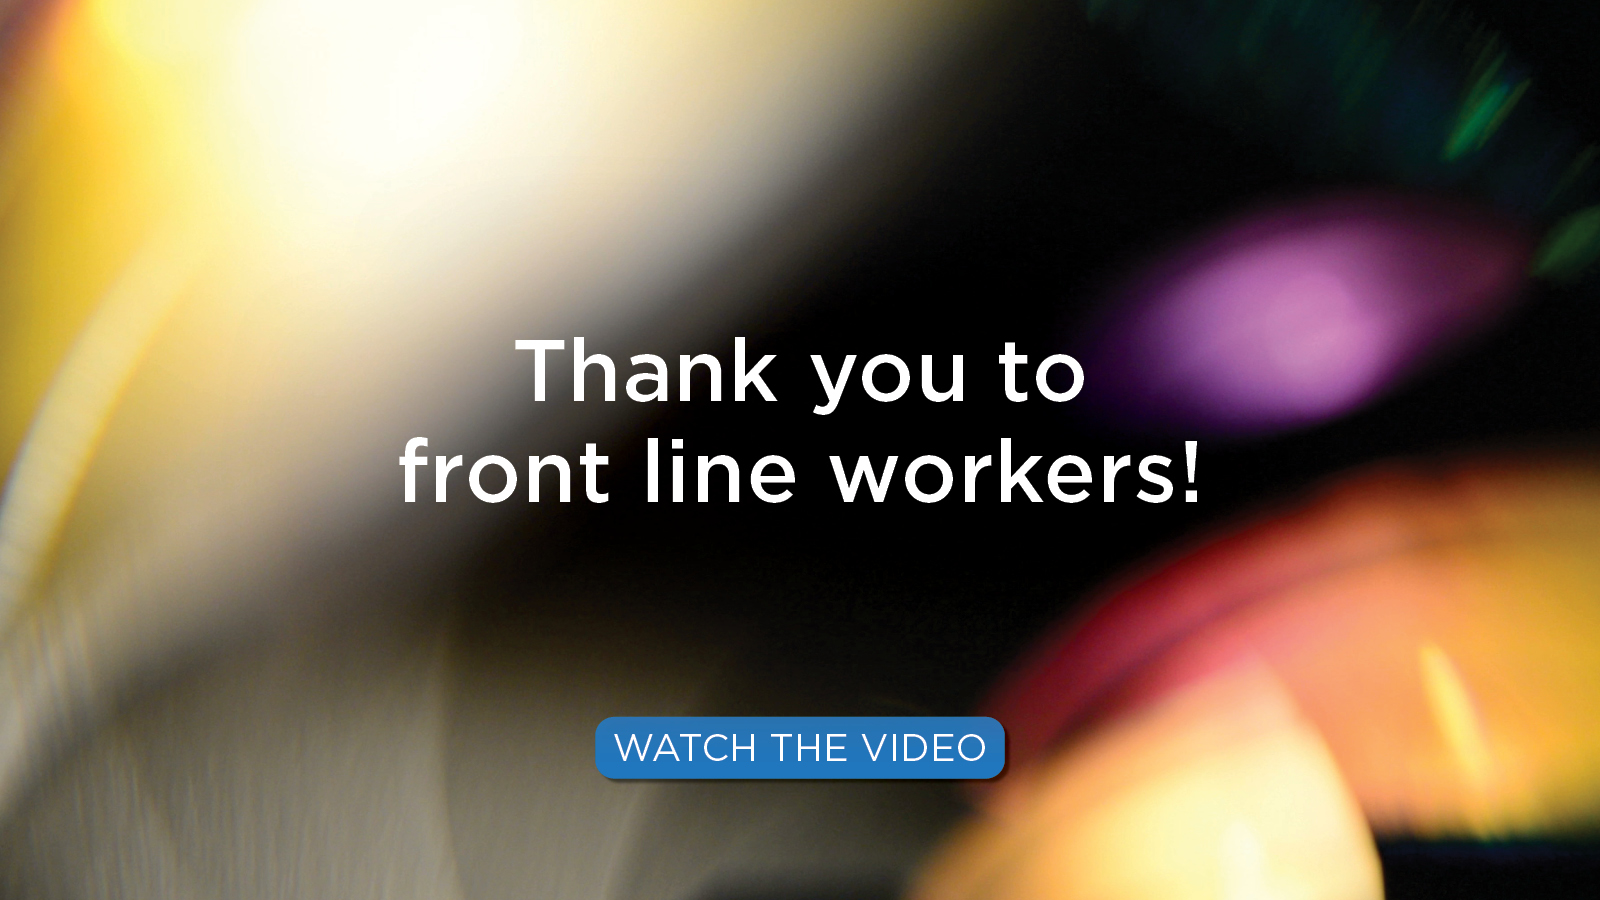 Thank you to front line workers! [Watch the video]